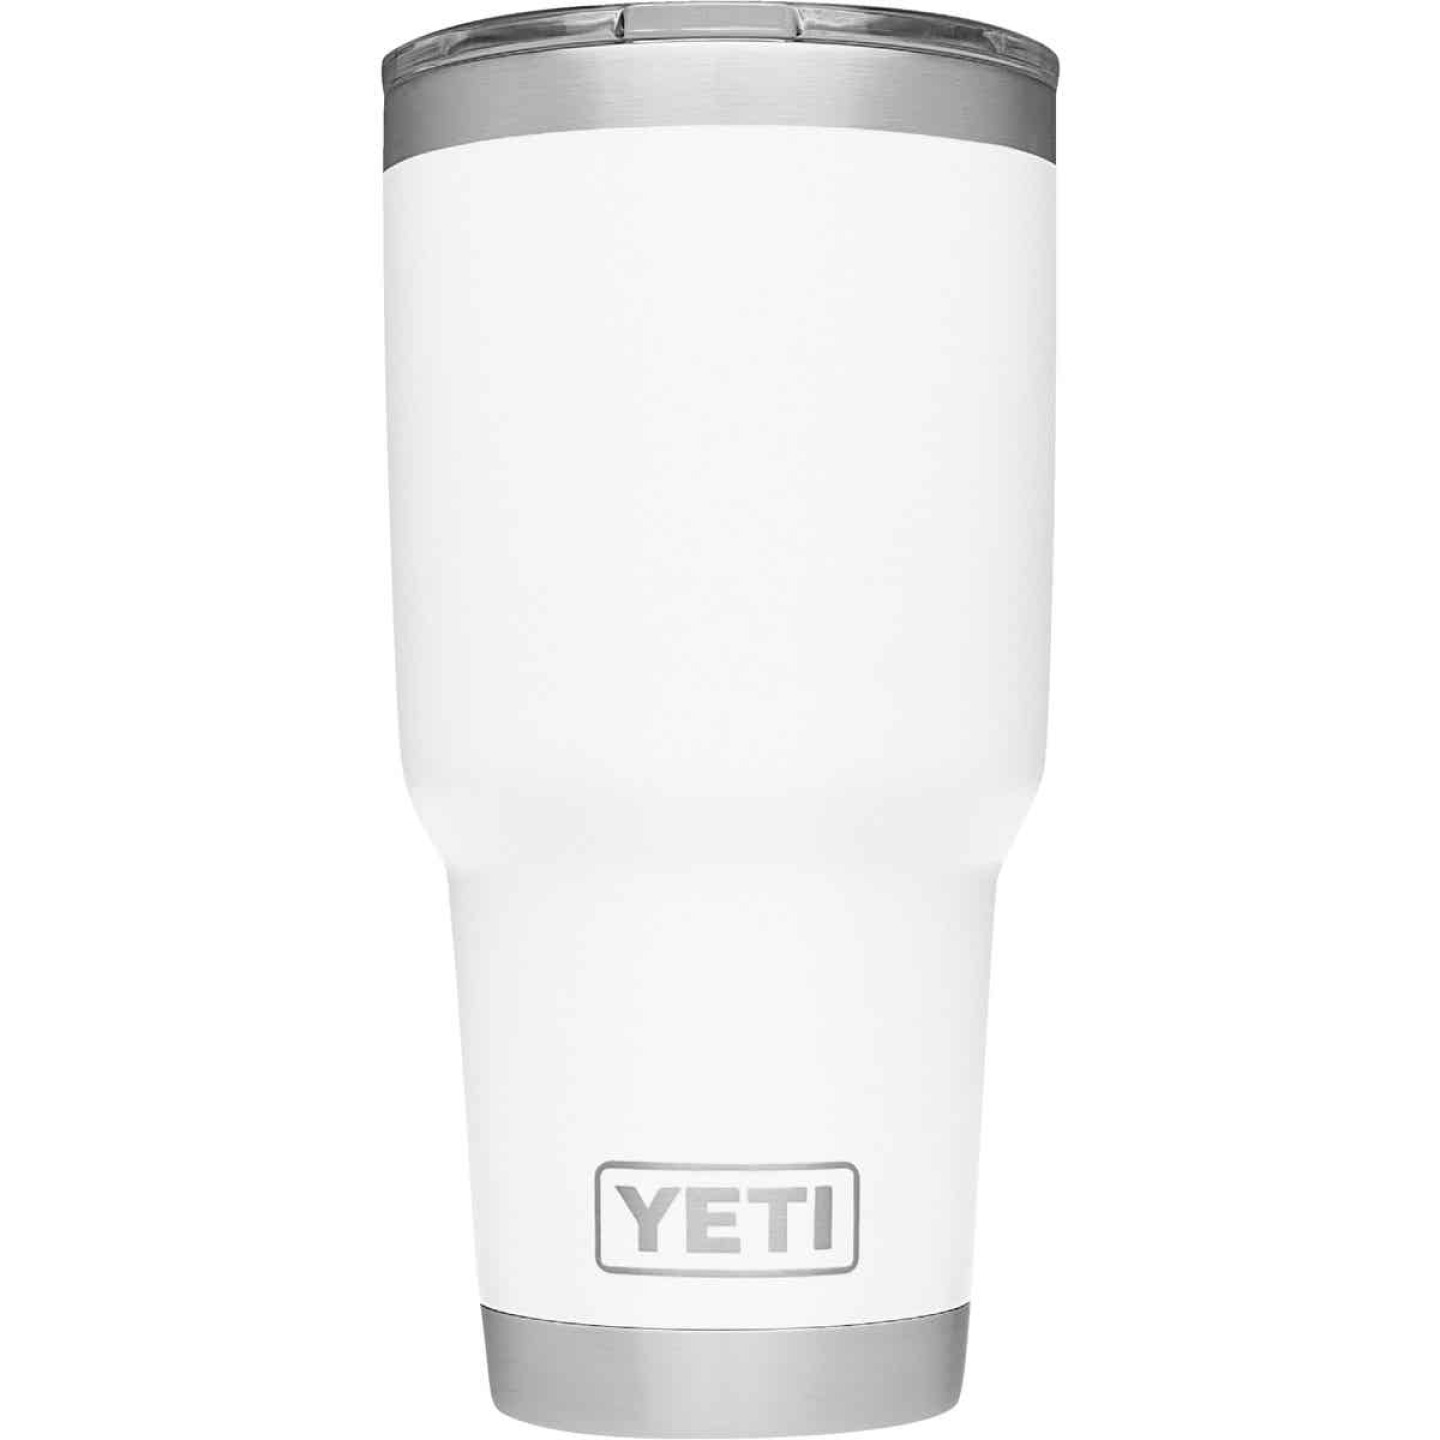 Yeti Rambler 30 Oz. White Stainless Steel Insulated Tumbler with MagSlider Lid Image 2